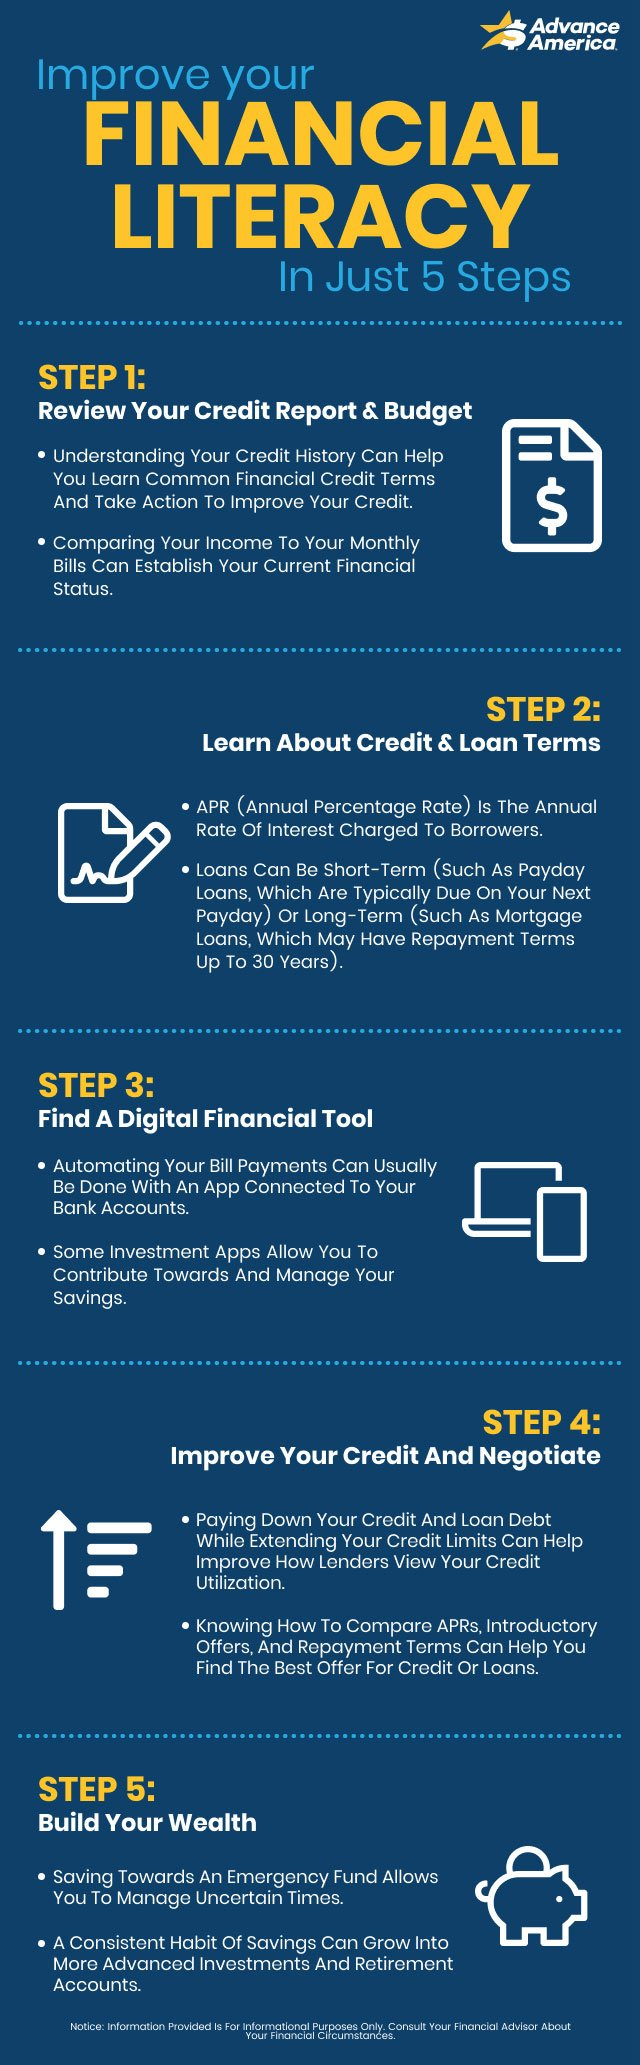 5 steps to help improve your financial literacy